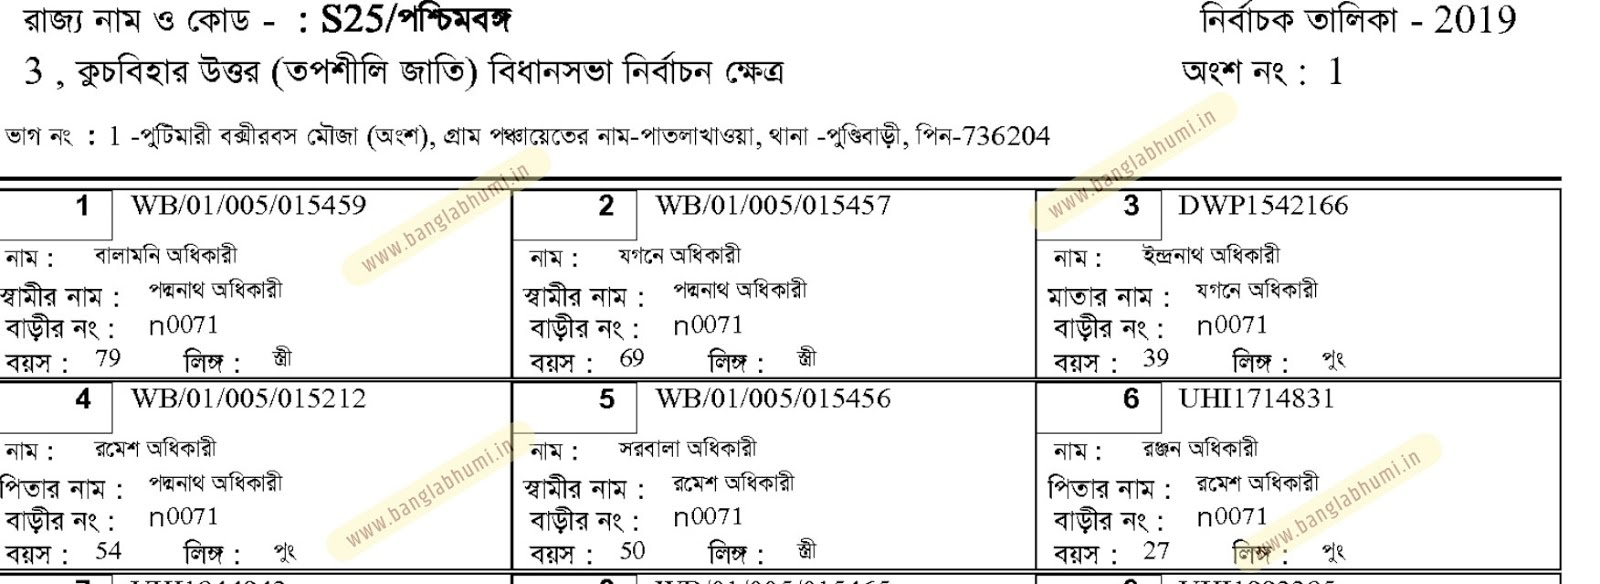 West Bengal Voter List 2018-2019 Download in PDF - West Bengal Election 2019